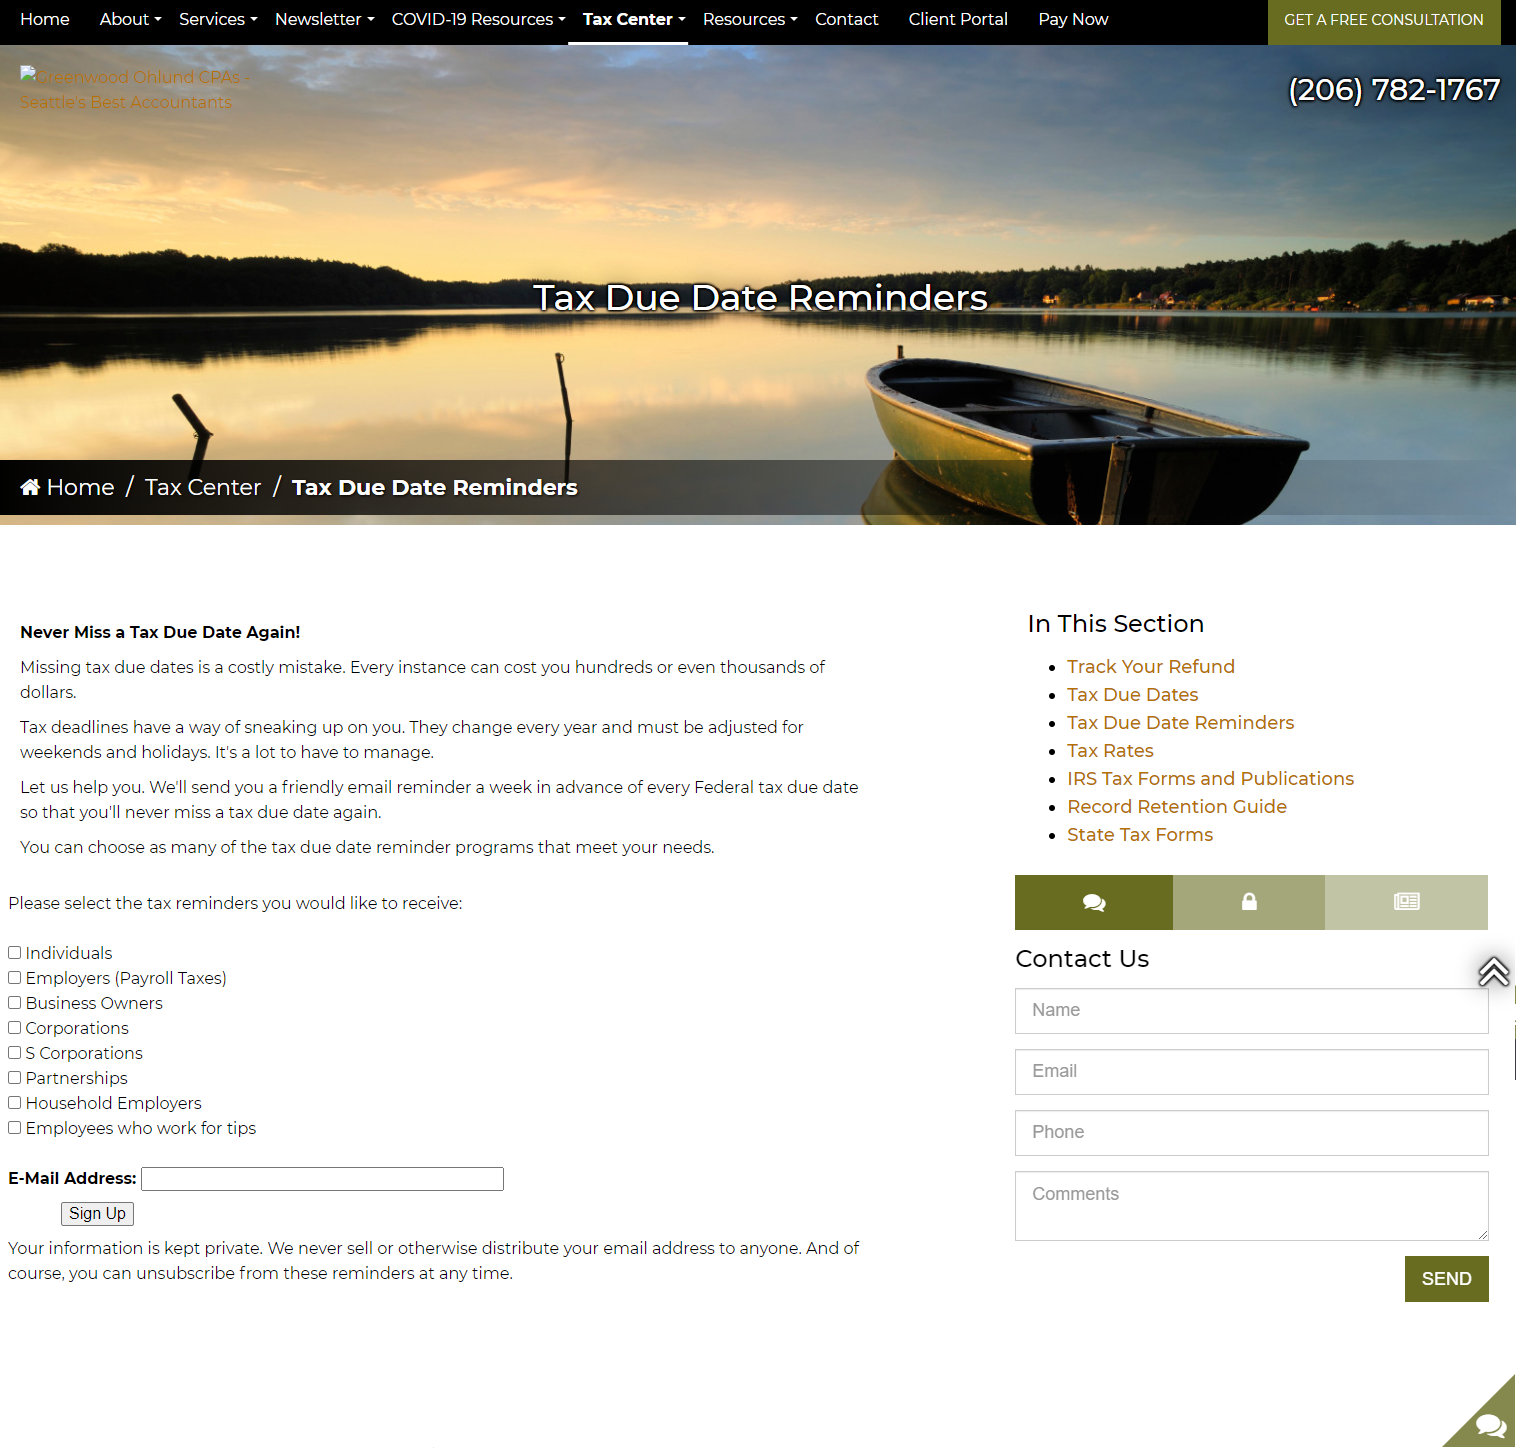 4 Conversion Focused Features for Accounting Firm Websites - Tax Due Dates Reminder